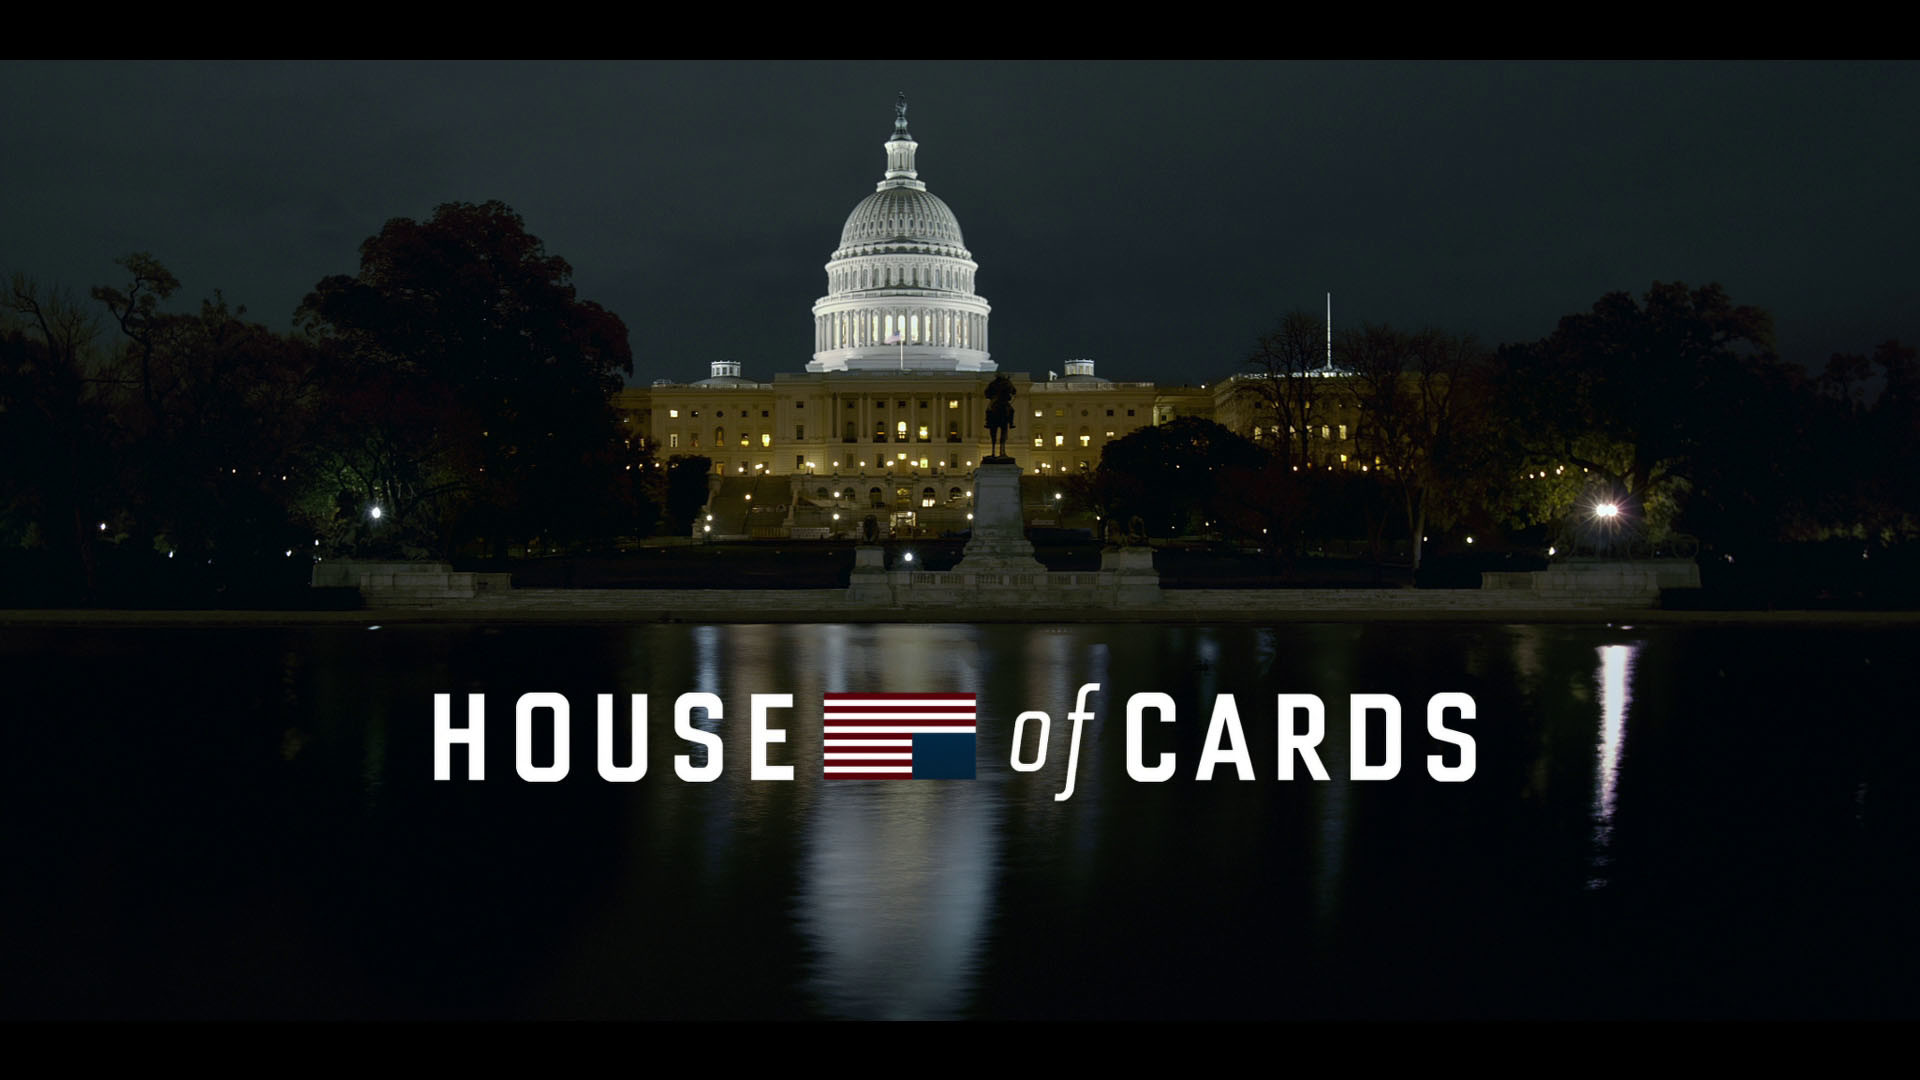 The Capitol, House of Cards wallpaper